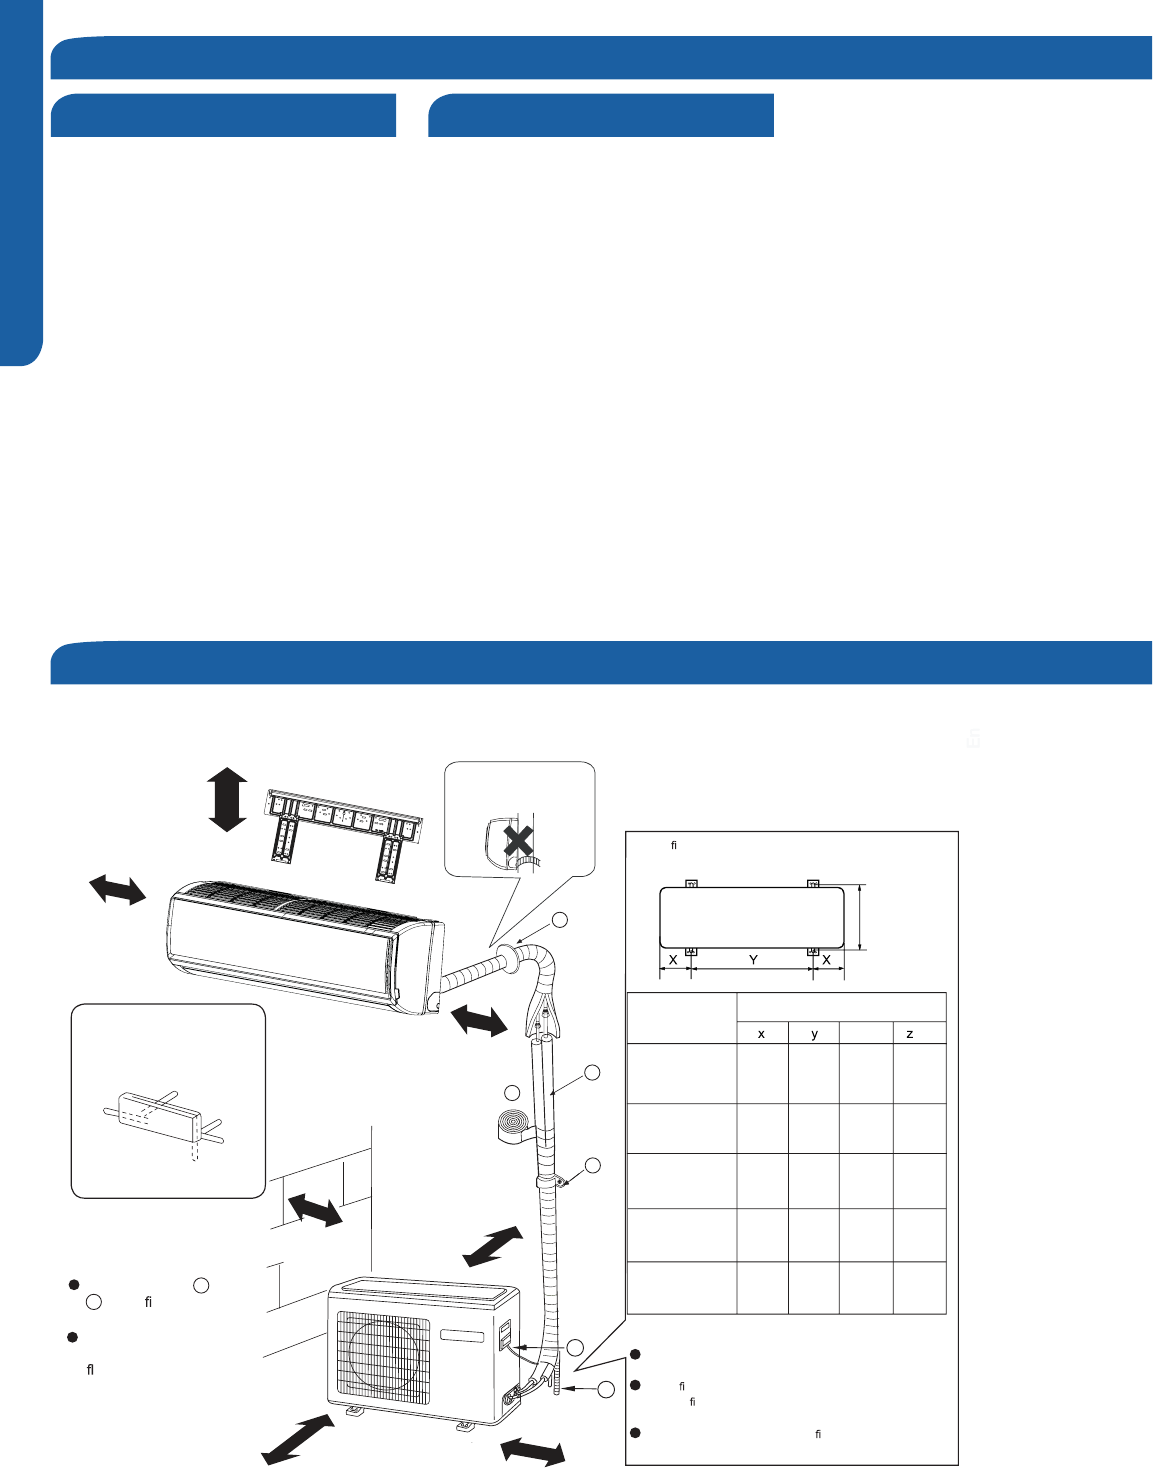 Haier AW12ES2VHB User Manual AIR HANDLER (INDOOR BLOWER&EVAP ... on evcon heat pump wiring diagrams, haier heat pump parts, rheem manuals wiring diagrams, amana heat pump wiring diagrams,